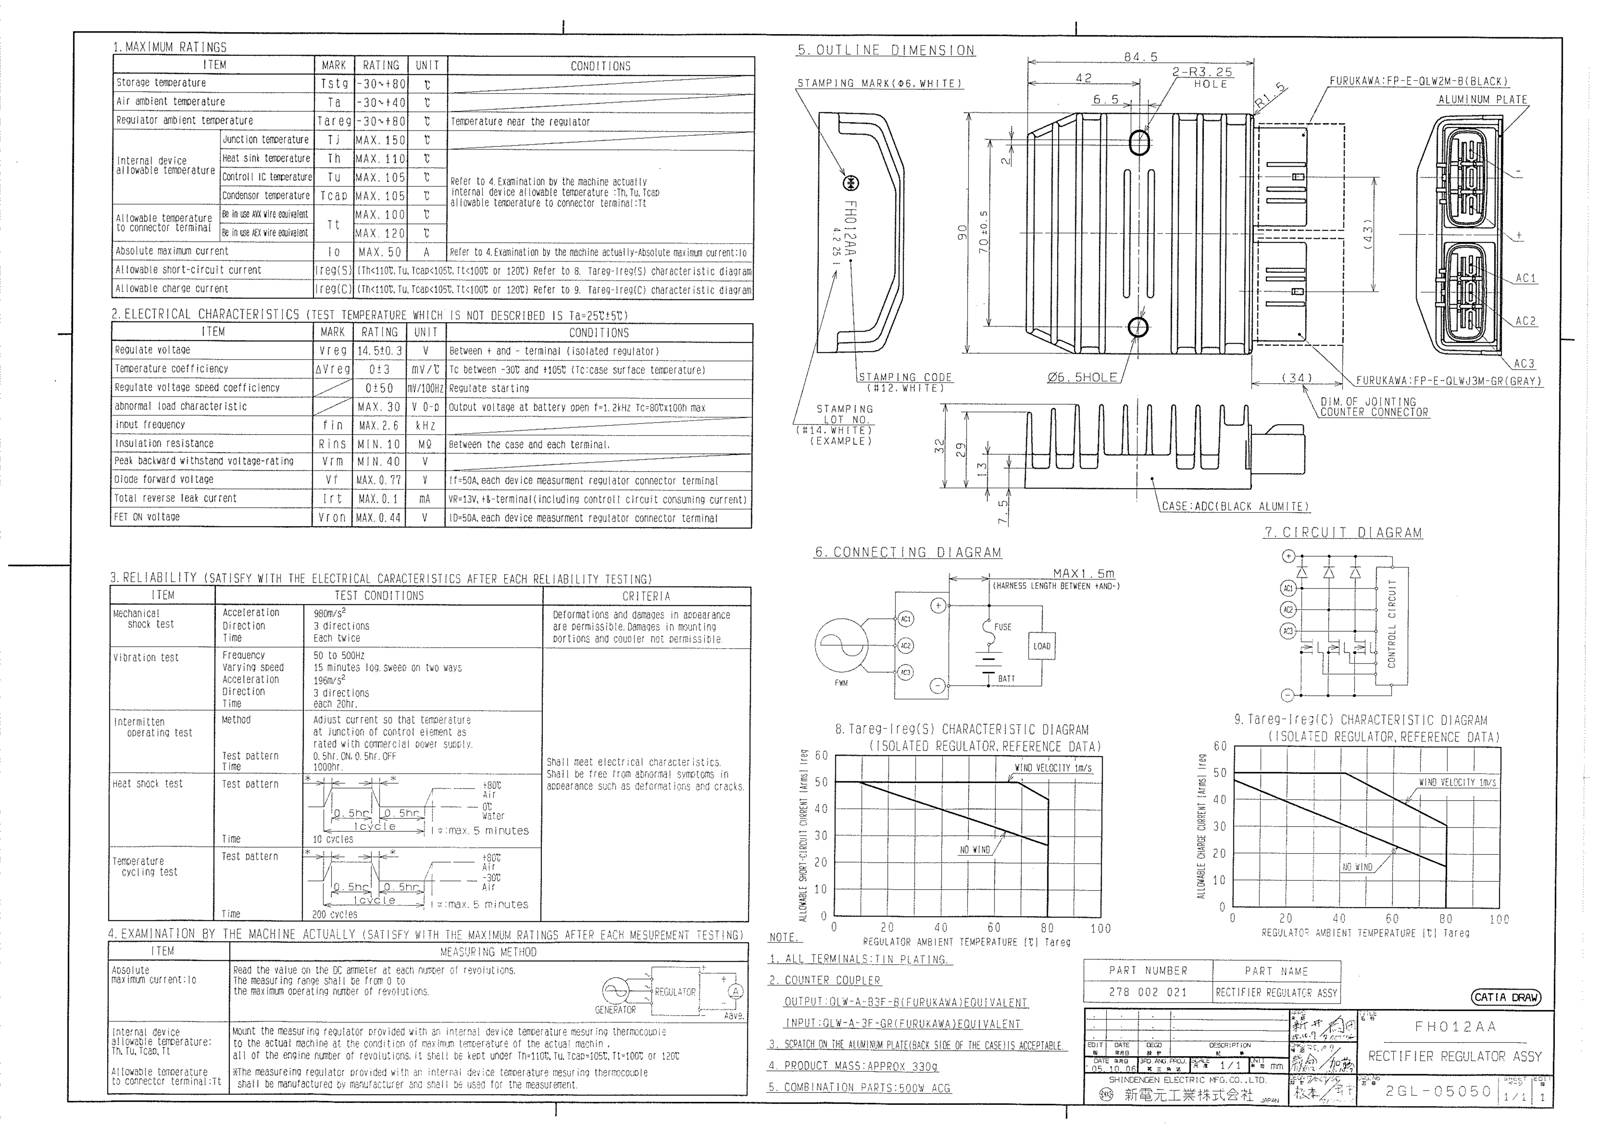 Mosfet R R Fh020aa Tech Data Sheets Anyone